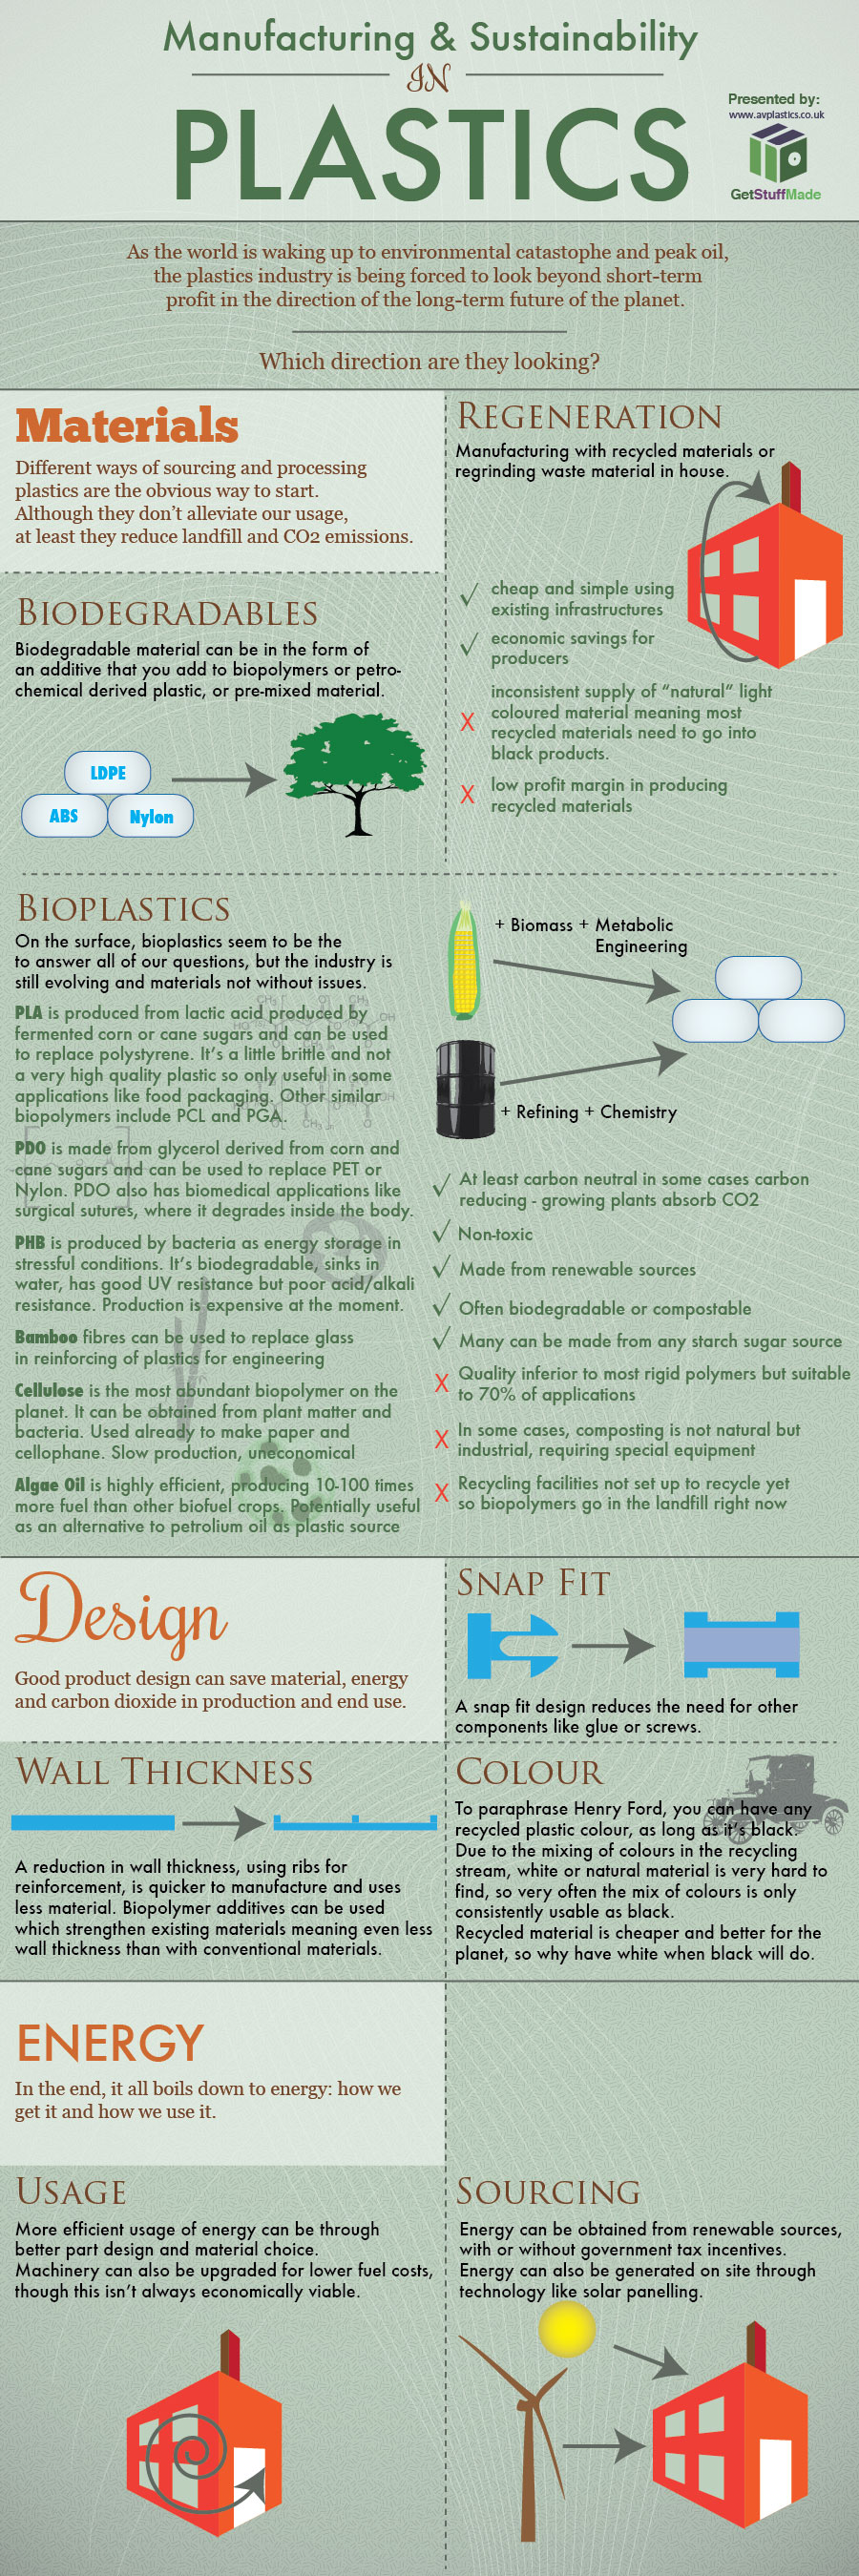 manufacturing and sustainability in plastics biopolymers and bioplastics infographic